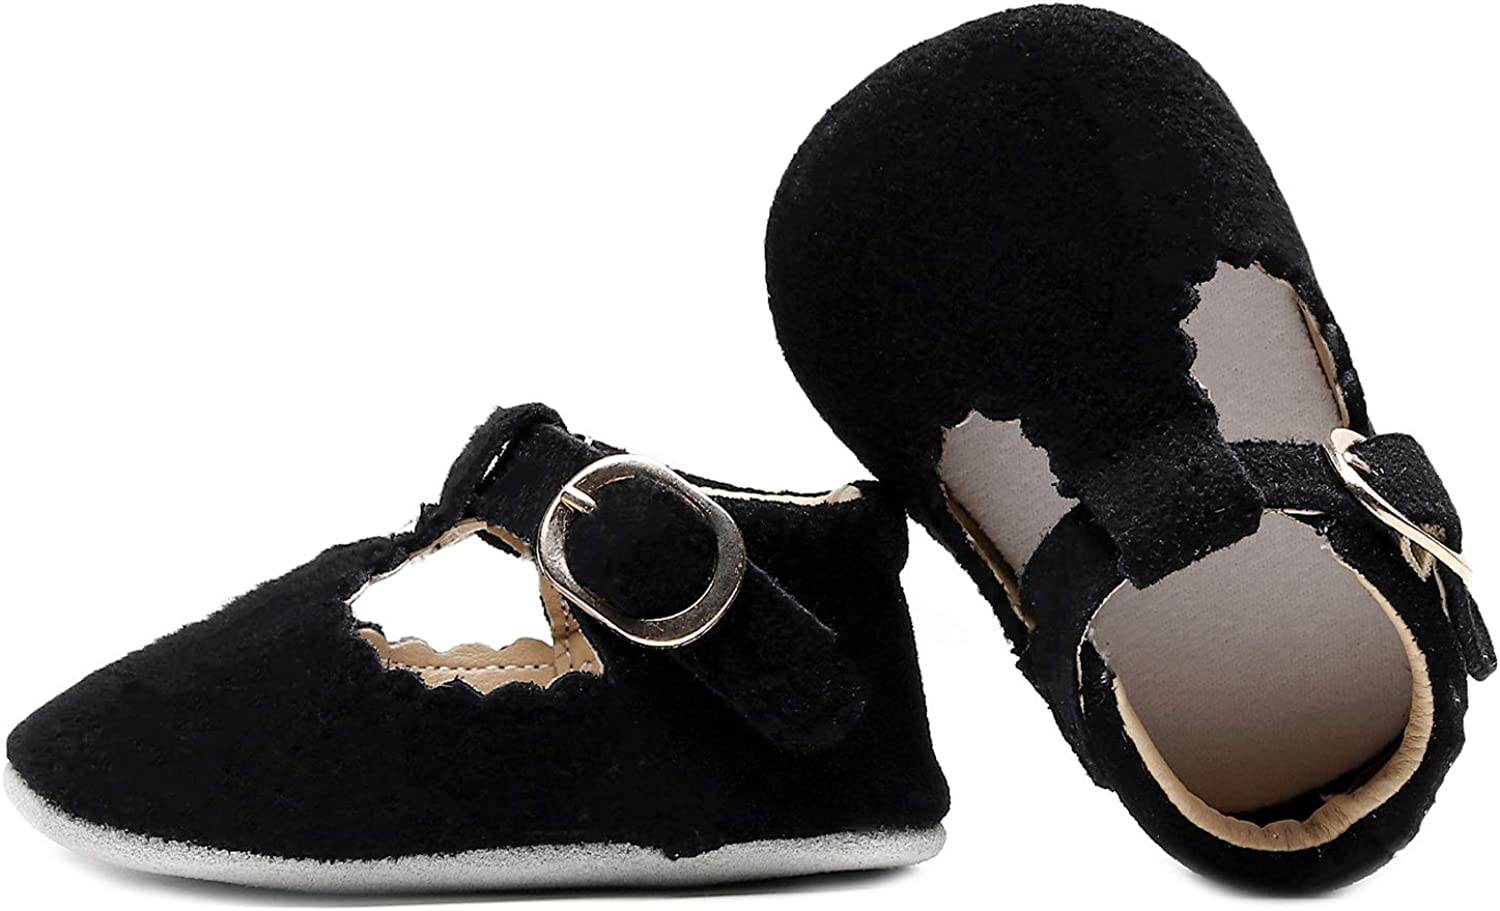 HONGTEYA T-Strap Suede Leather Baby Moccasins Shoes with Soft Sole T-bar Sandals Mary Jane for Infants Prewalkers Toddlers Boys Girls